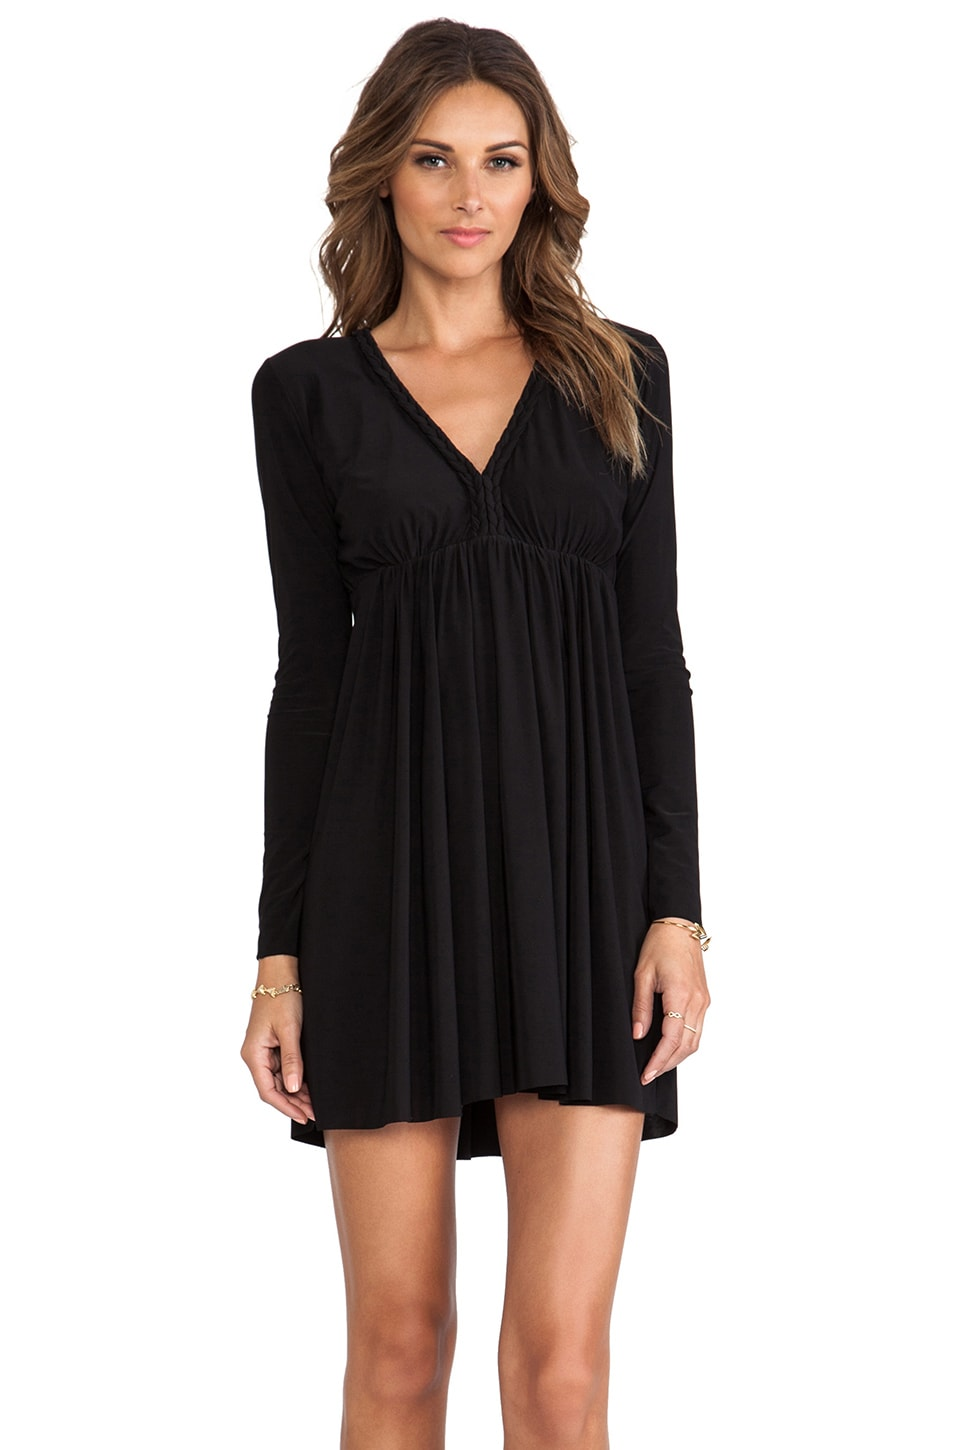 T-Bags LosAngeles Long Sleeve Open Back Dress in Black